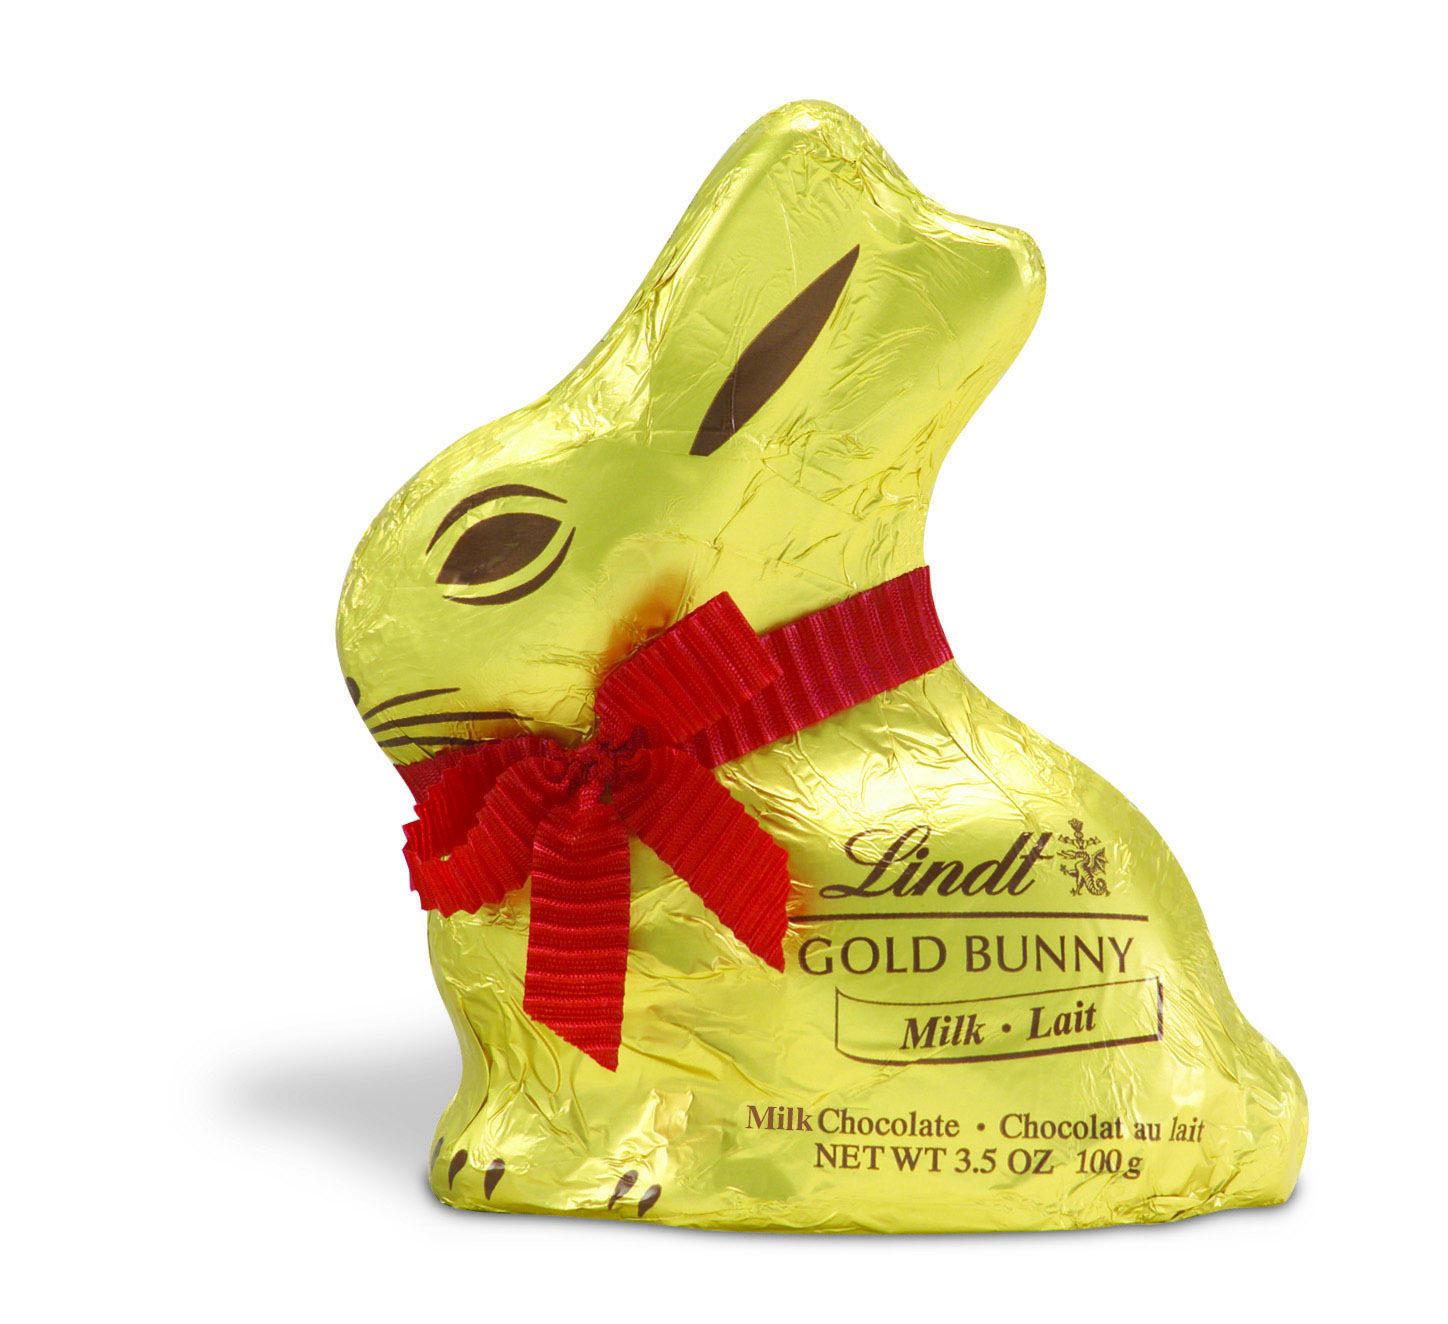 lindt chocolate bunny reviews in Chocolate - ChickAdvisor